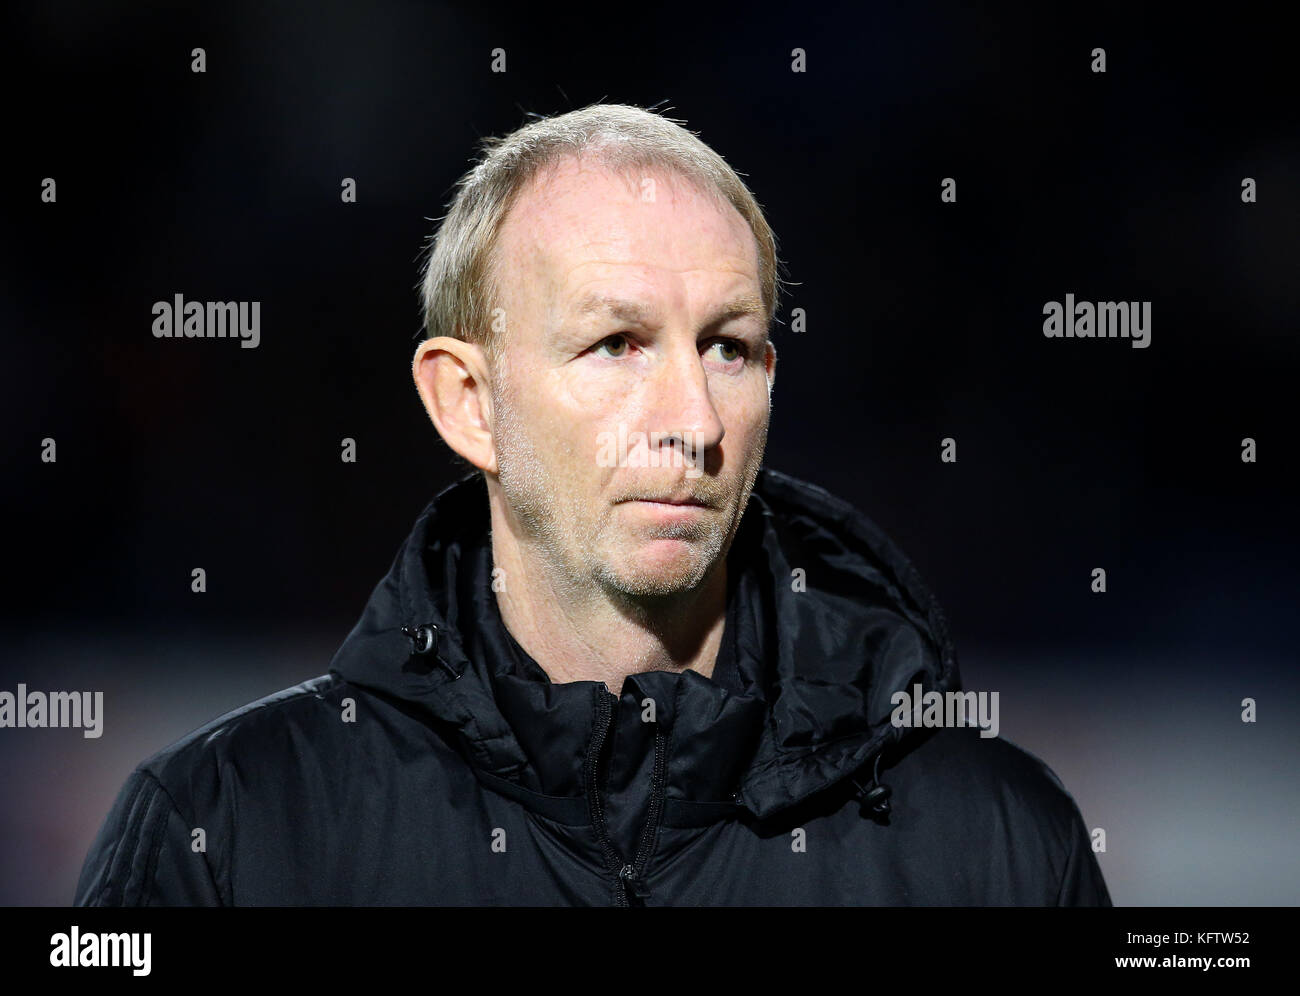 Sheffield United assistant manager Alan Knill during the Sky Bet Championship match at Loftus Road, London. - Stock Image